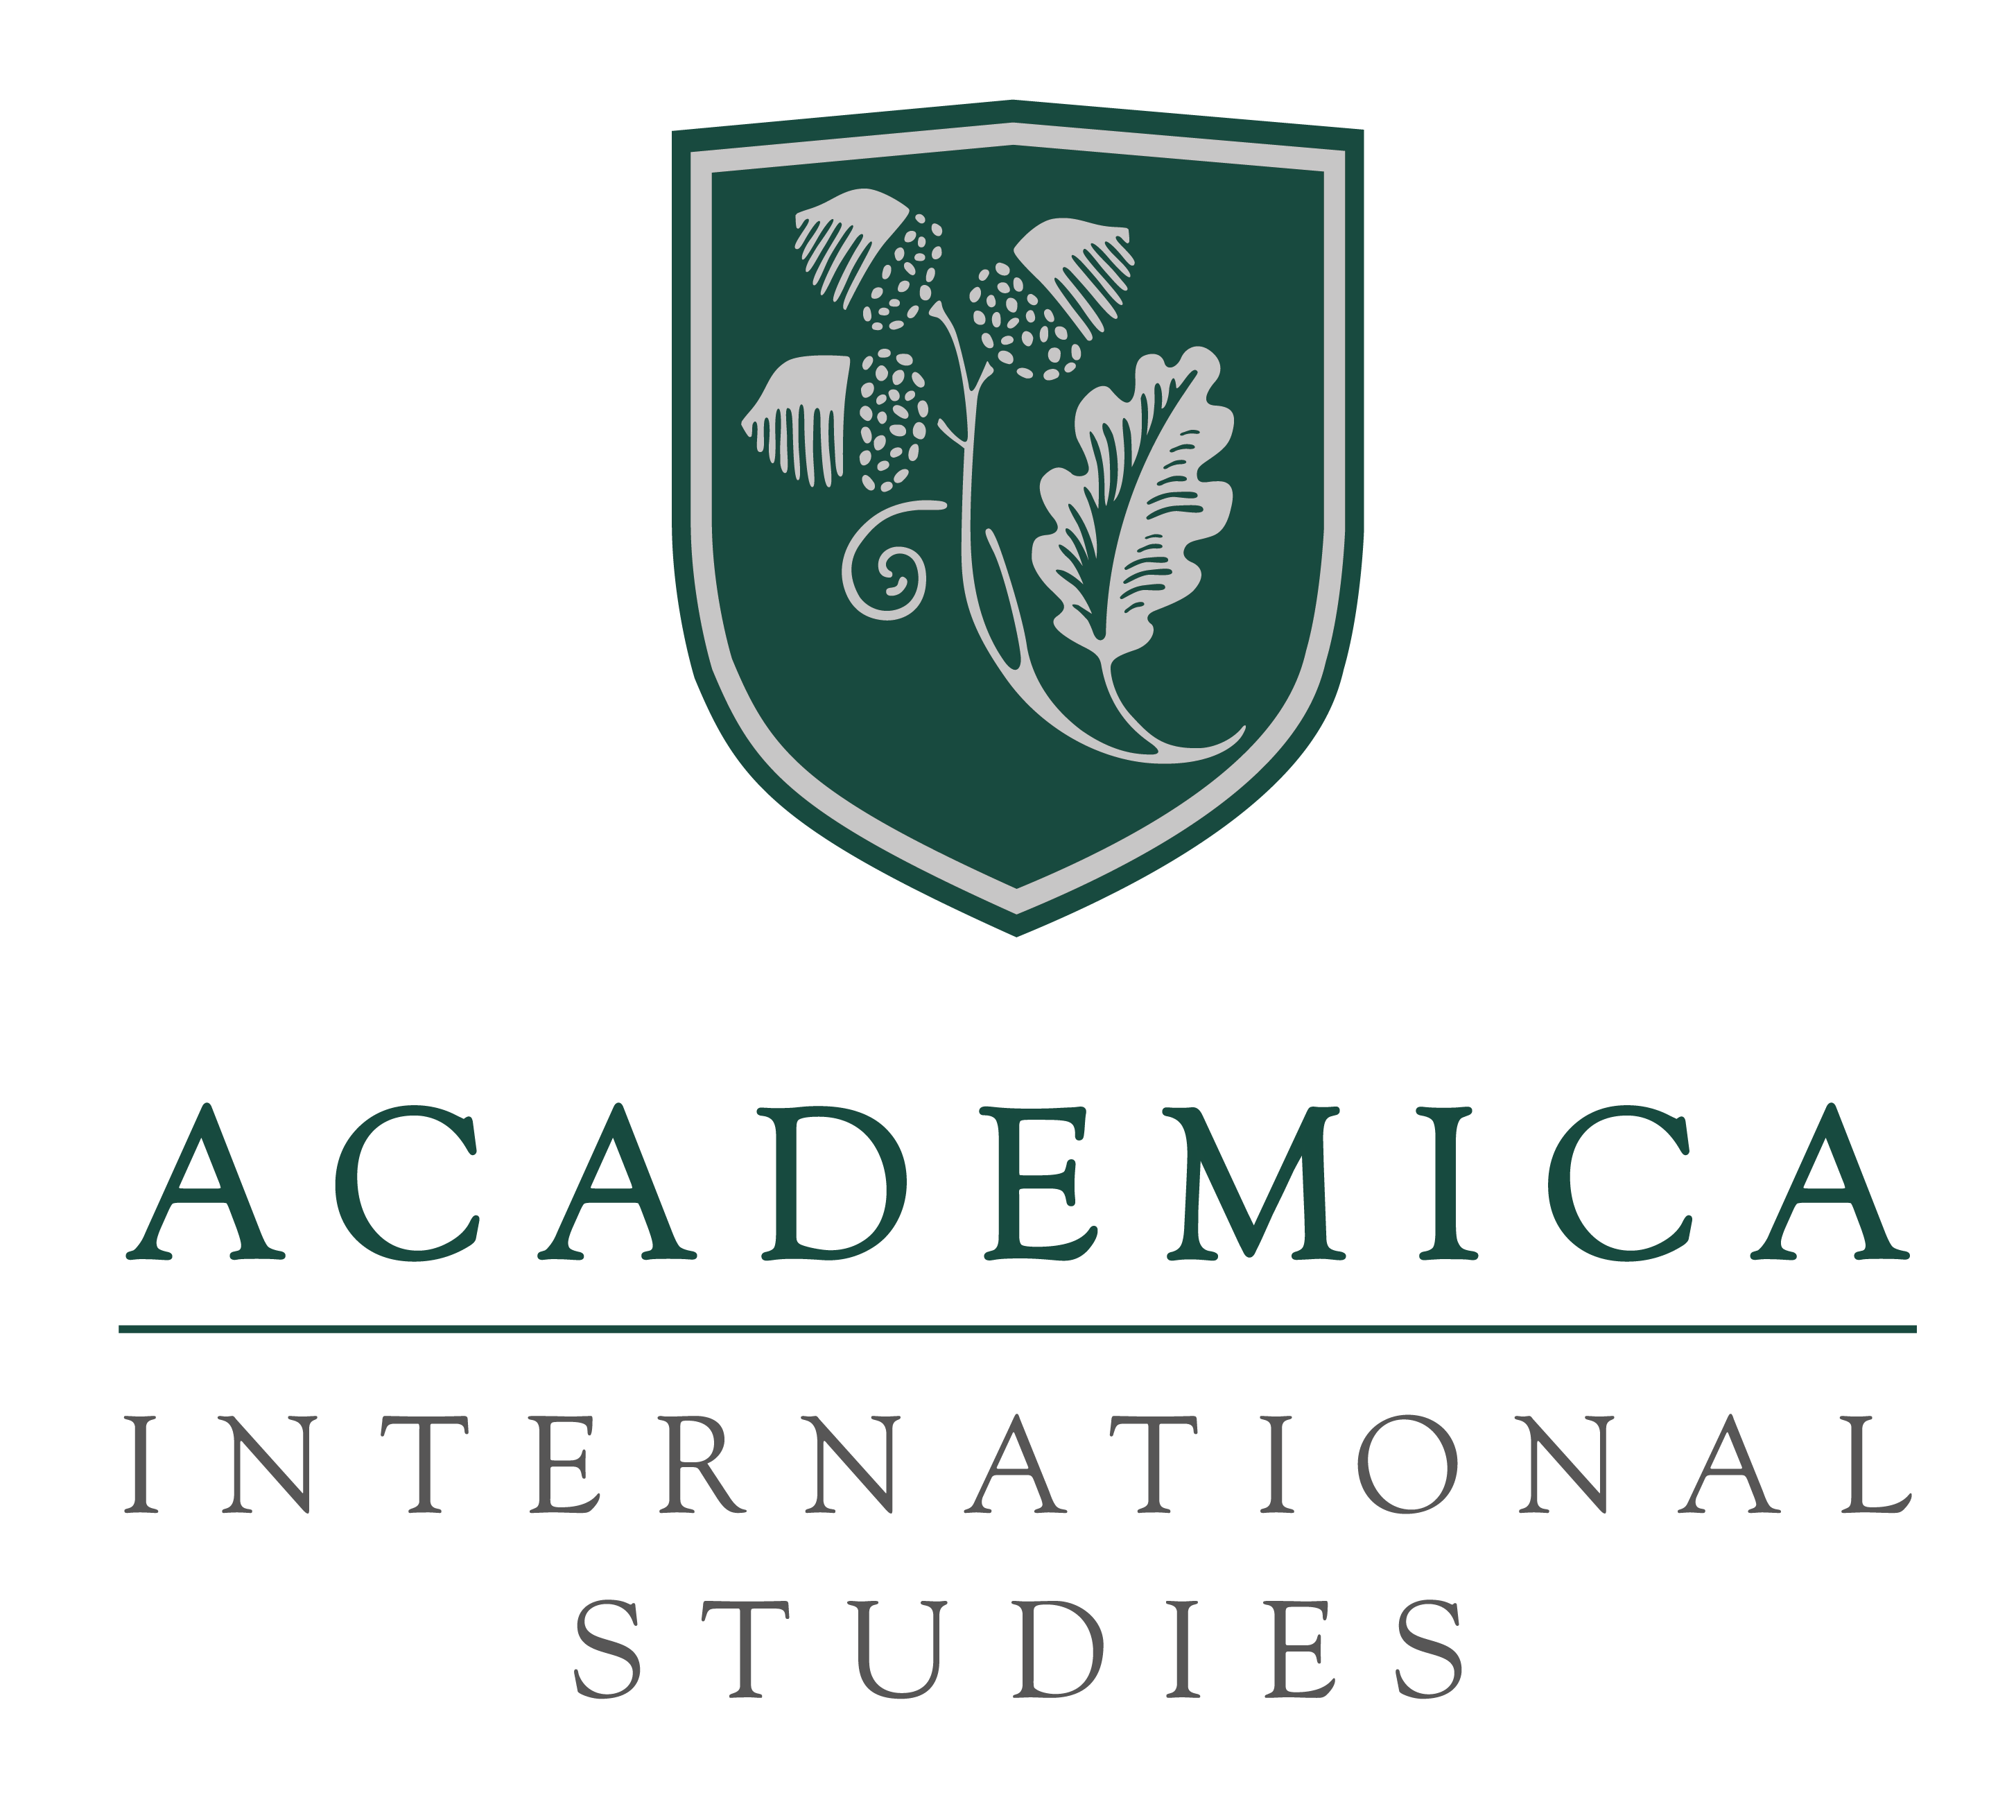 Academica - International Studies